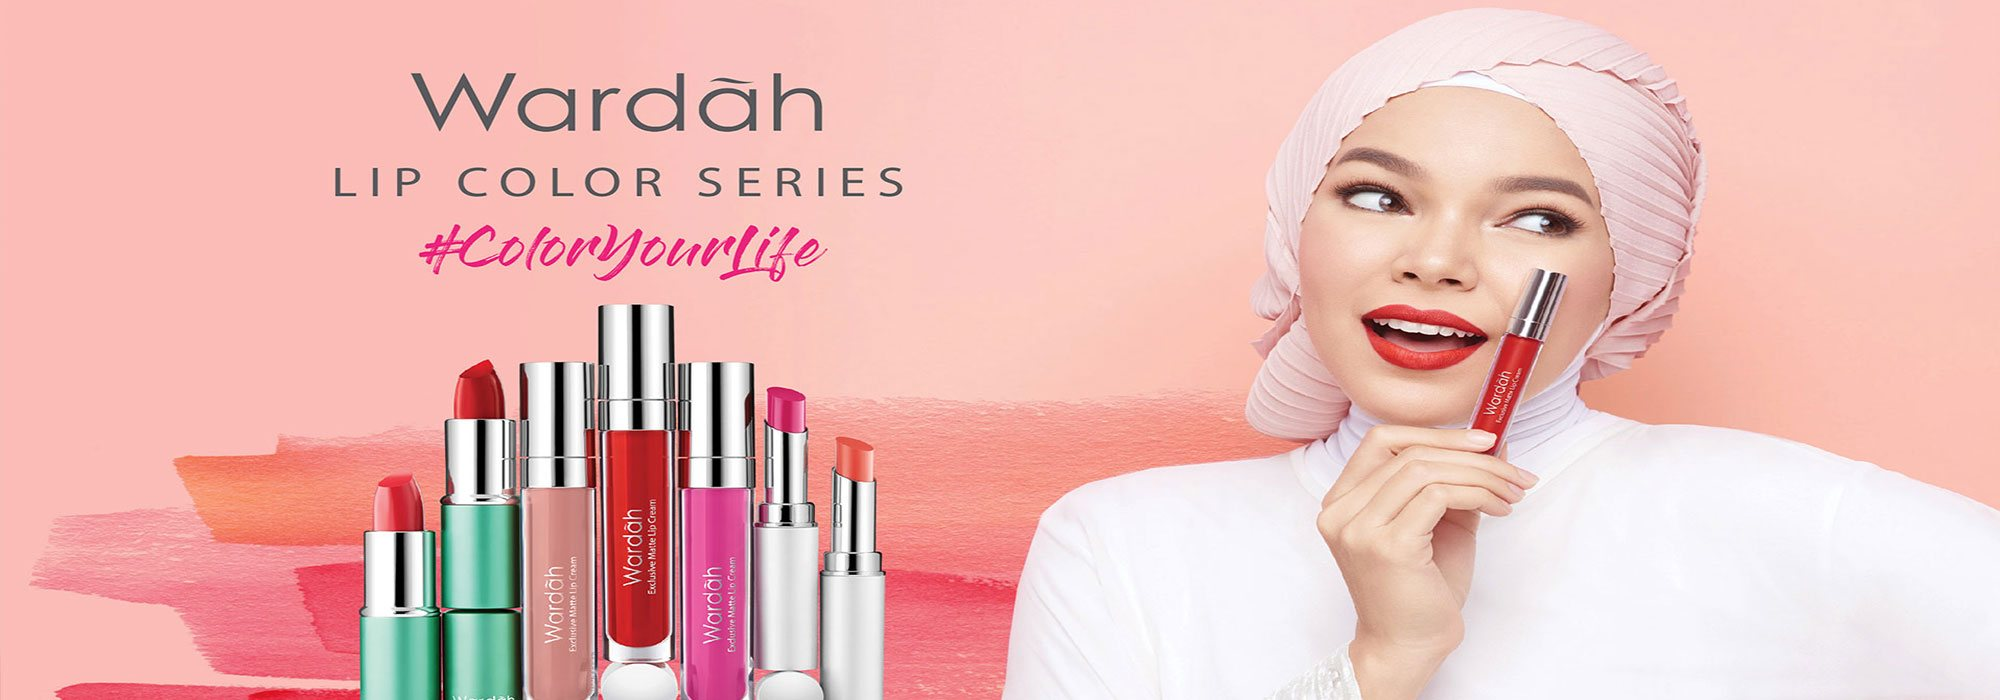 Distributor Wardah Indonesia